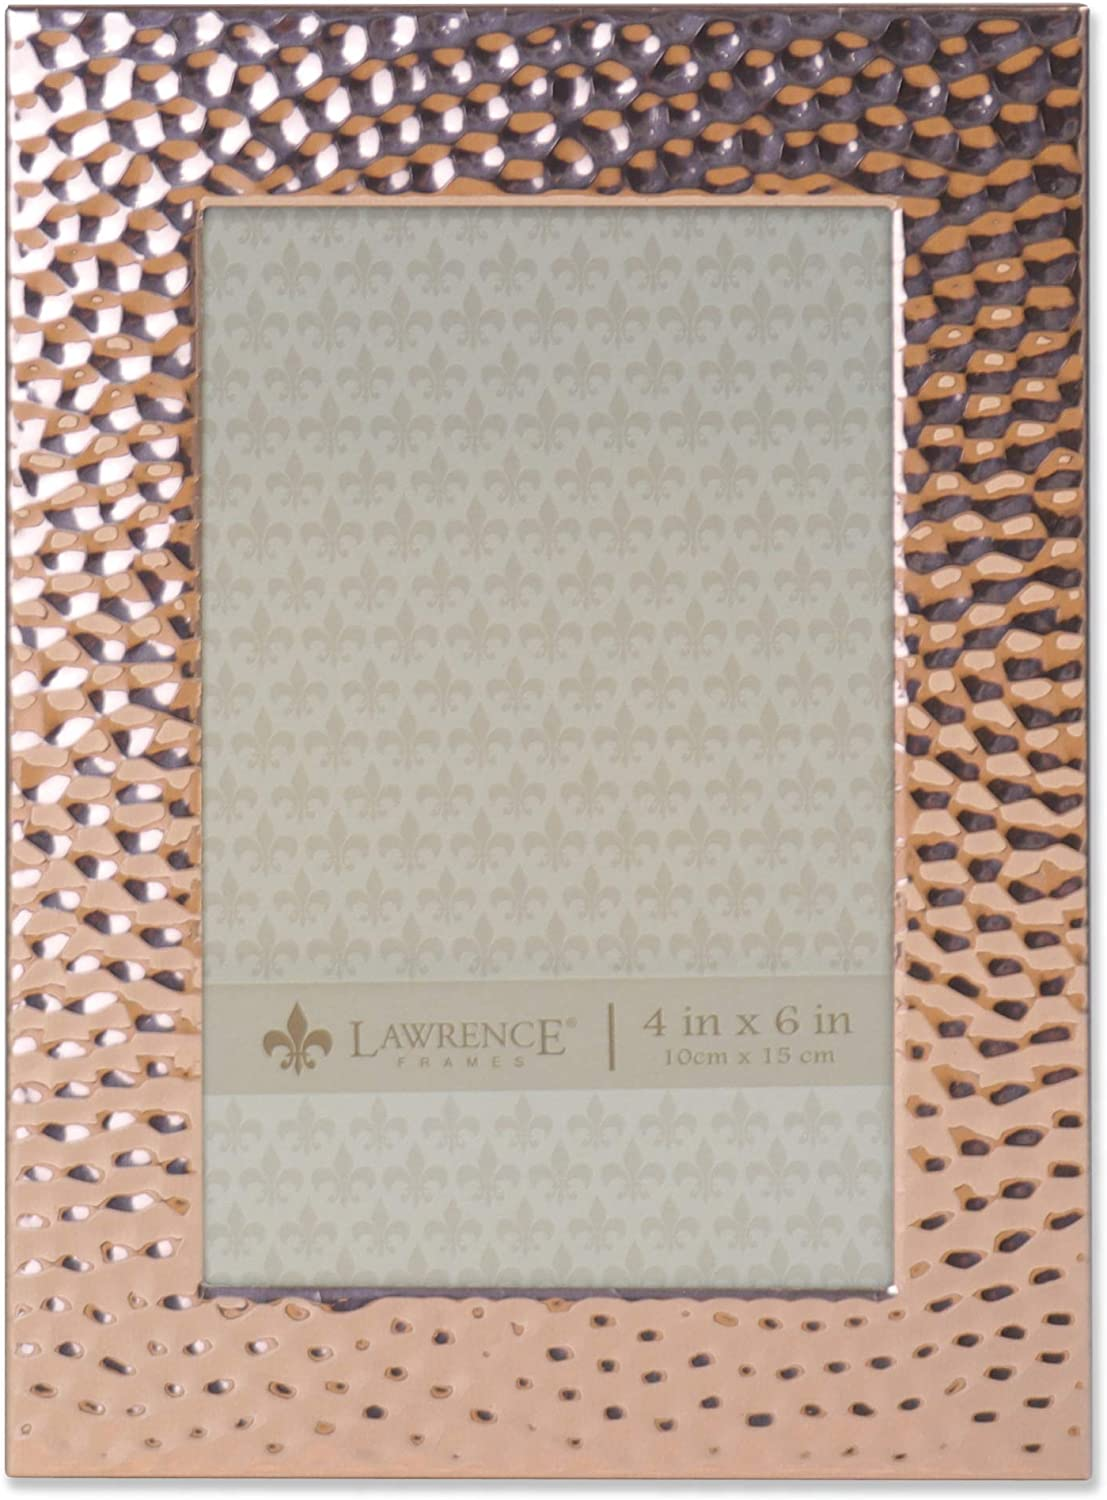 Lawrence Frames Hammered Reflections Frame, 4 by 6, Copper